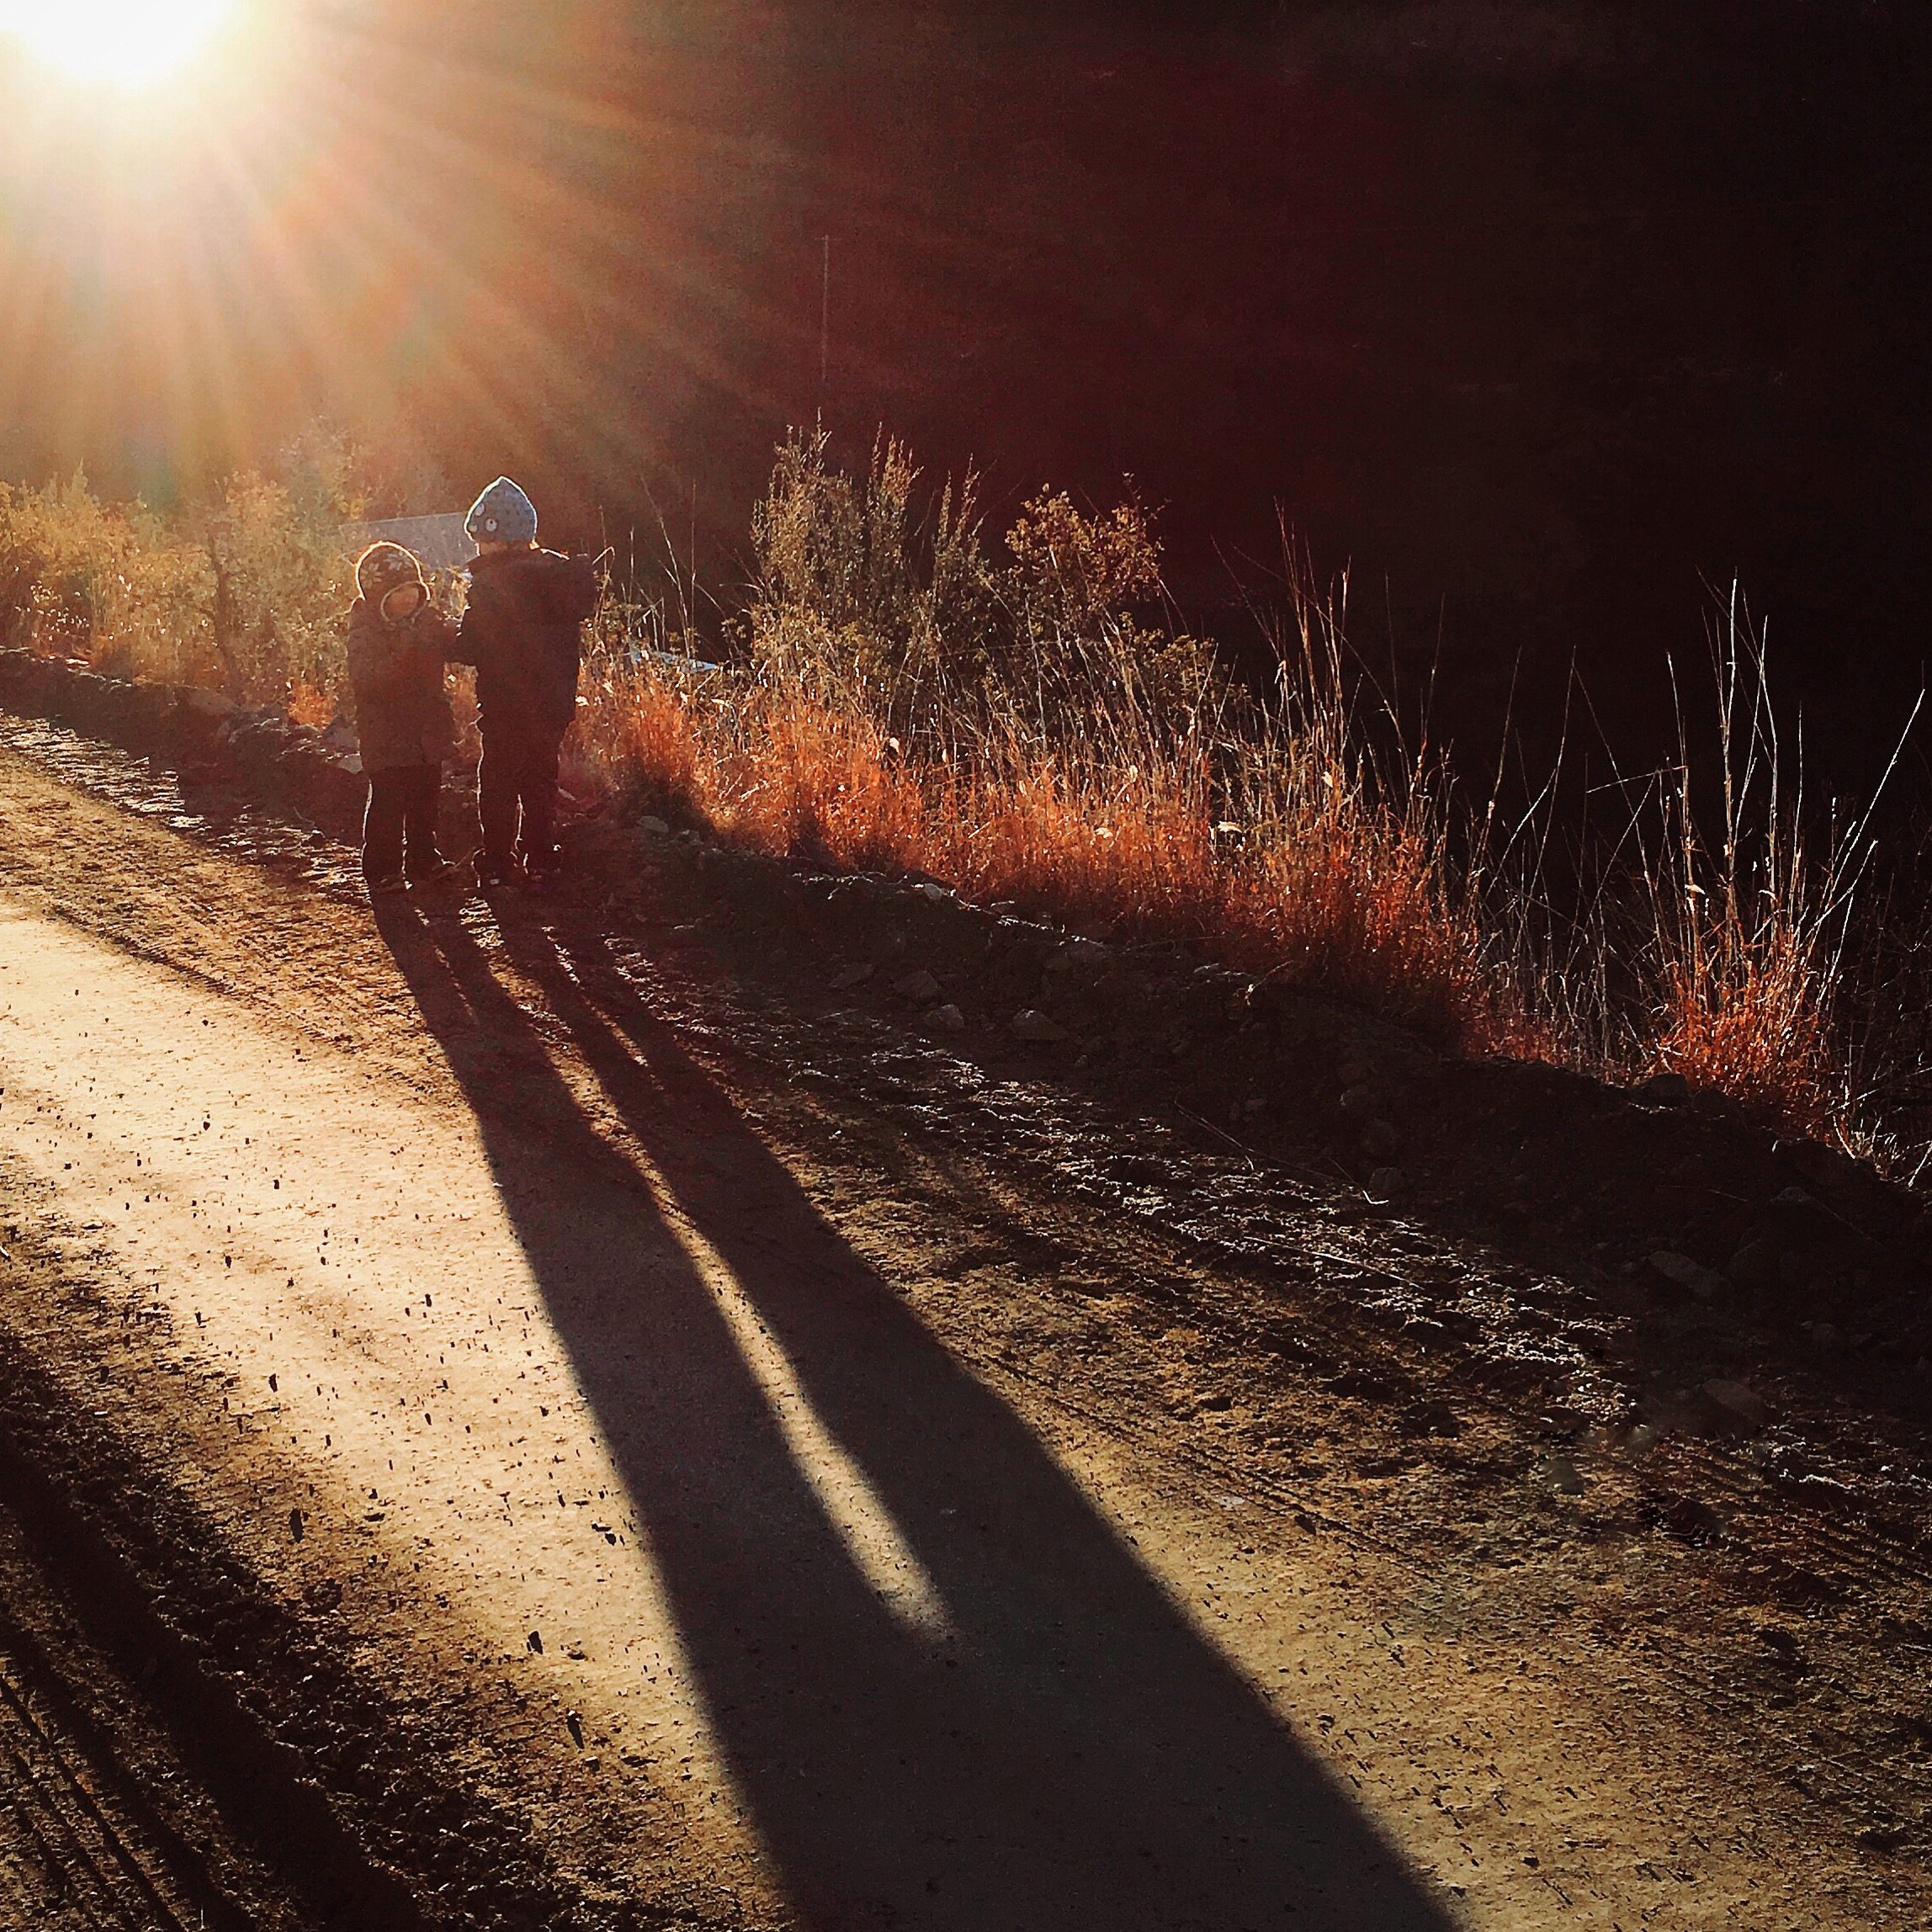 Magic hour:  The light and background came together in Lipkin's photo of an early morning hike in Arizona.